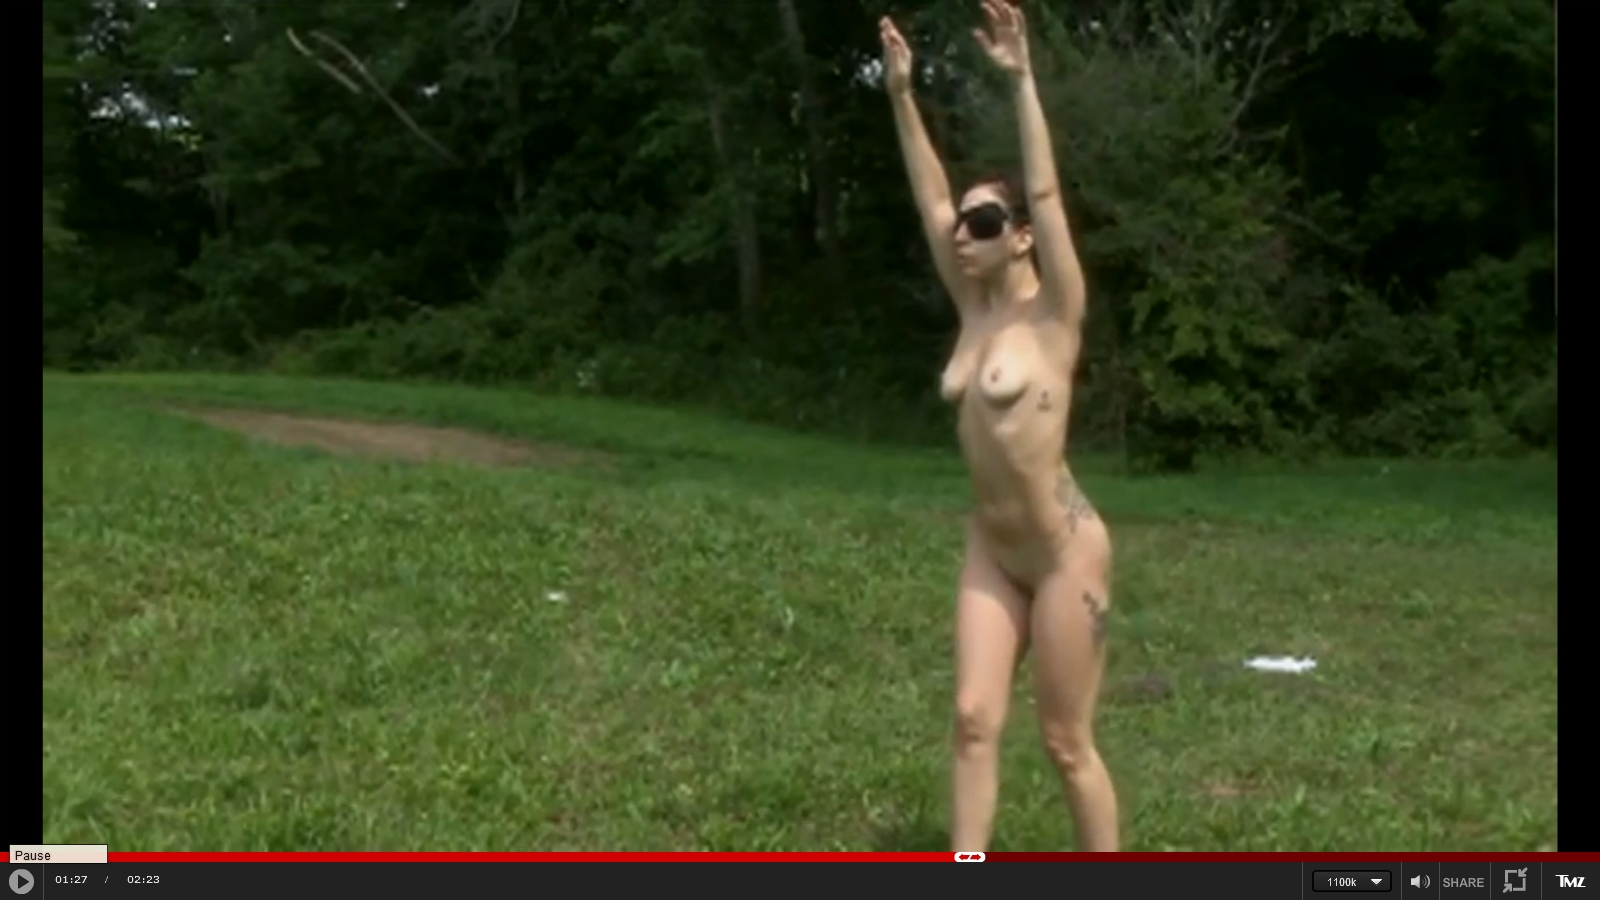 Lady Gaga Nude Full Frontal Nudity For Lady Gaga Video-4608